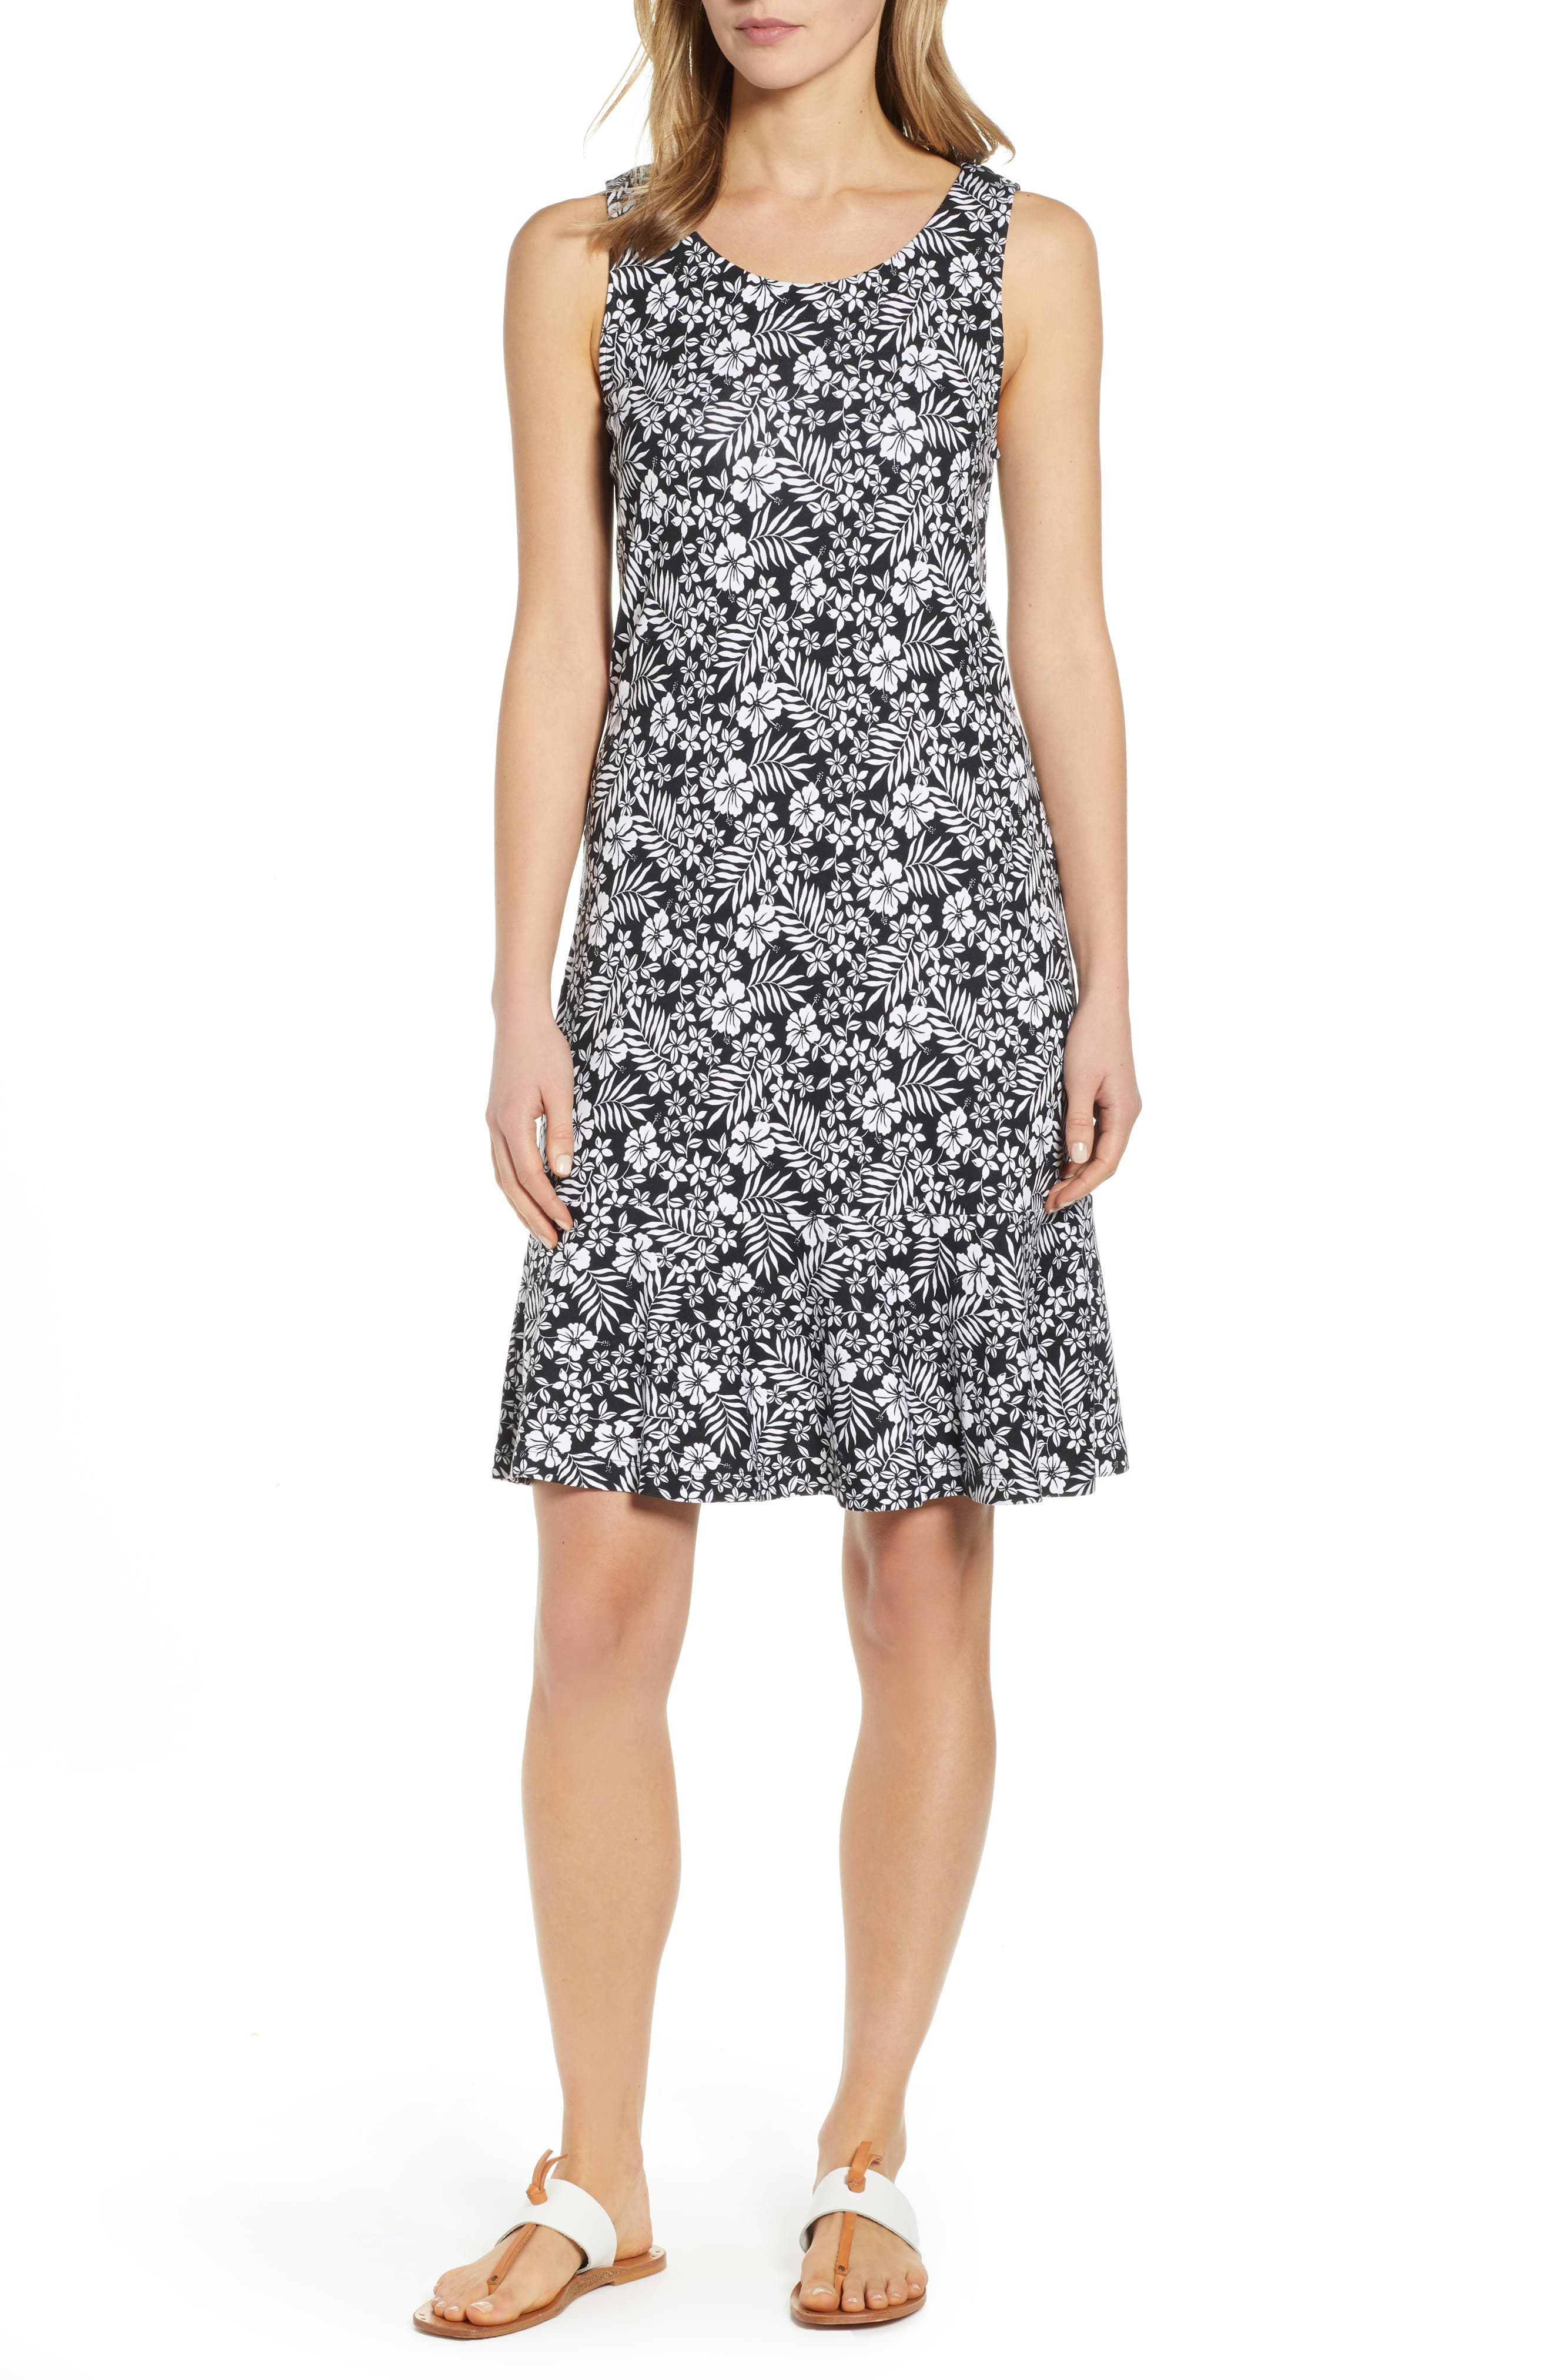 Tommy Bahama Florico Floral Dress, Black